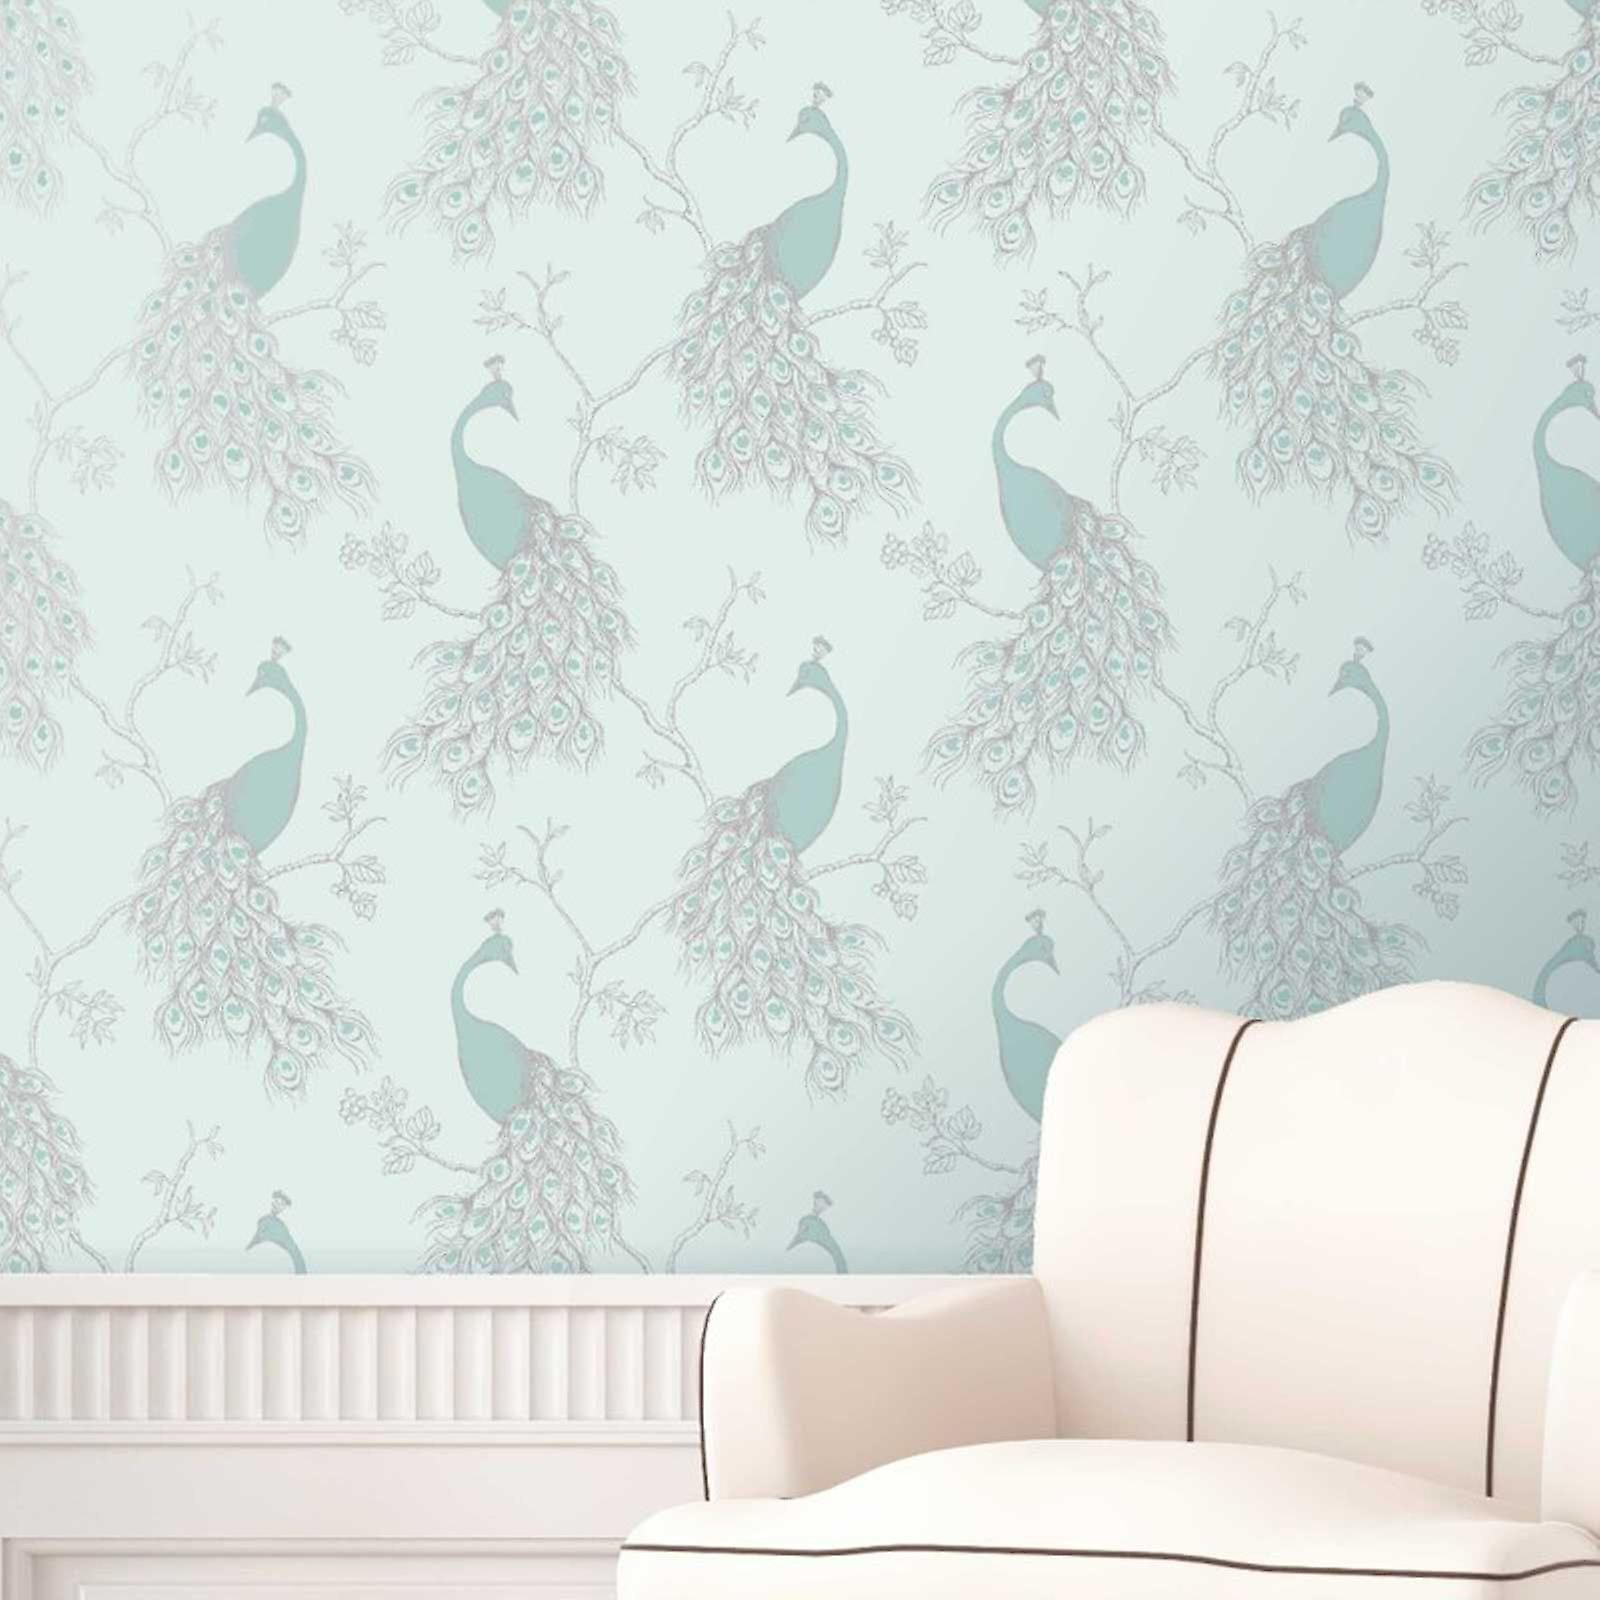 Fine Decor Empress Peacock Wallpaper Duck Egg Blue Teal